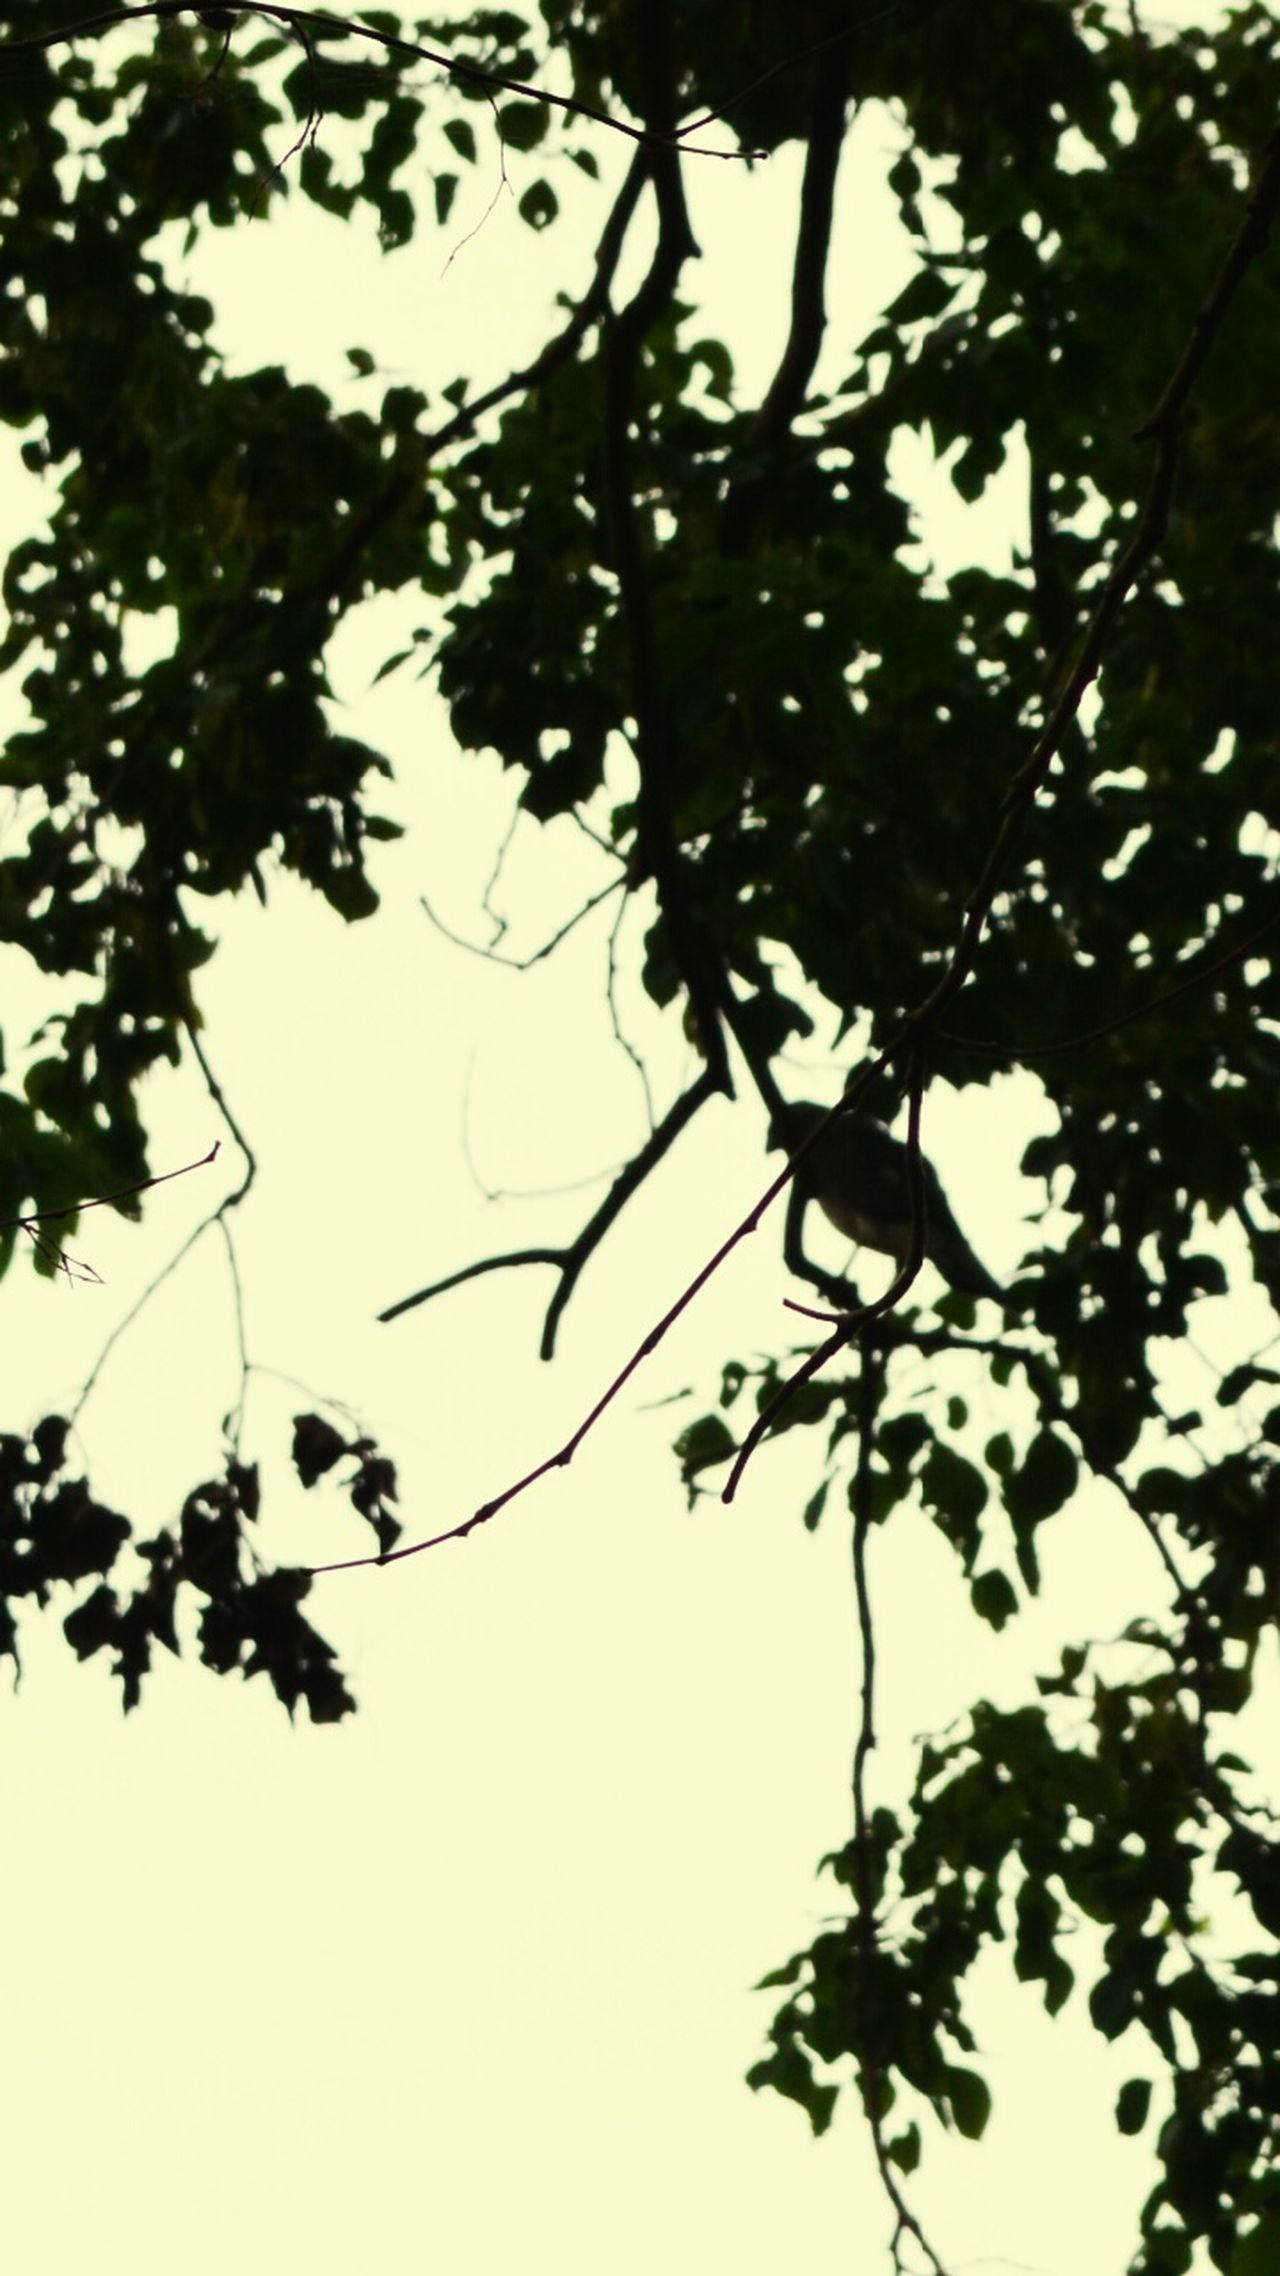 Tree Branch Leaf Low Angle View Outdoors Silhouette No People Day Nature Bird Animal Themes Sky Bird Life In The Worldwide Photography Of The Day